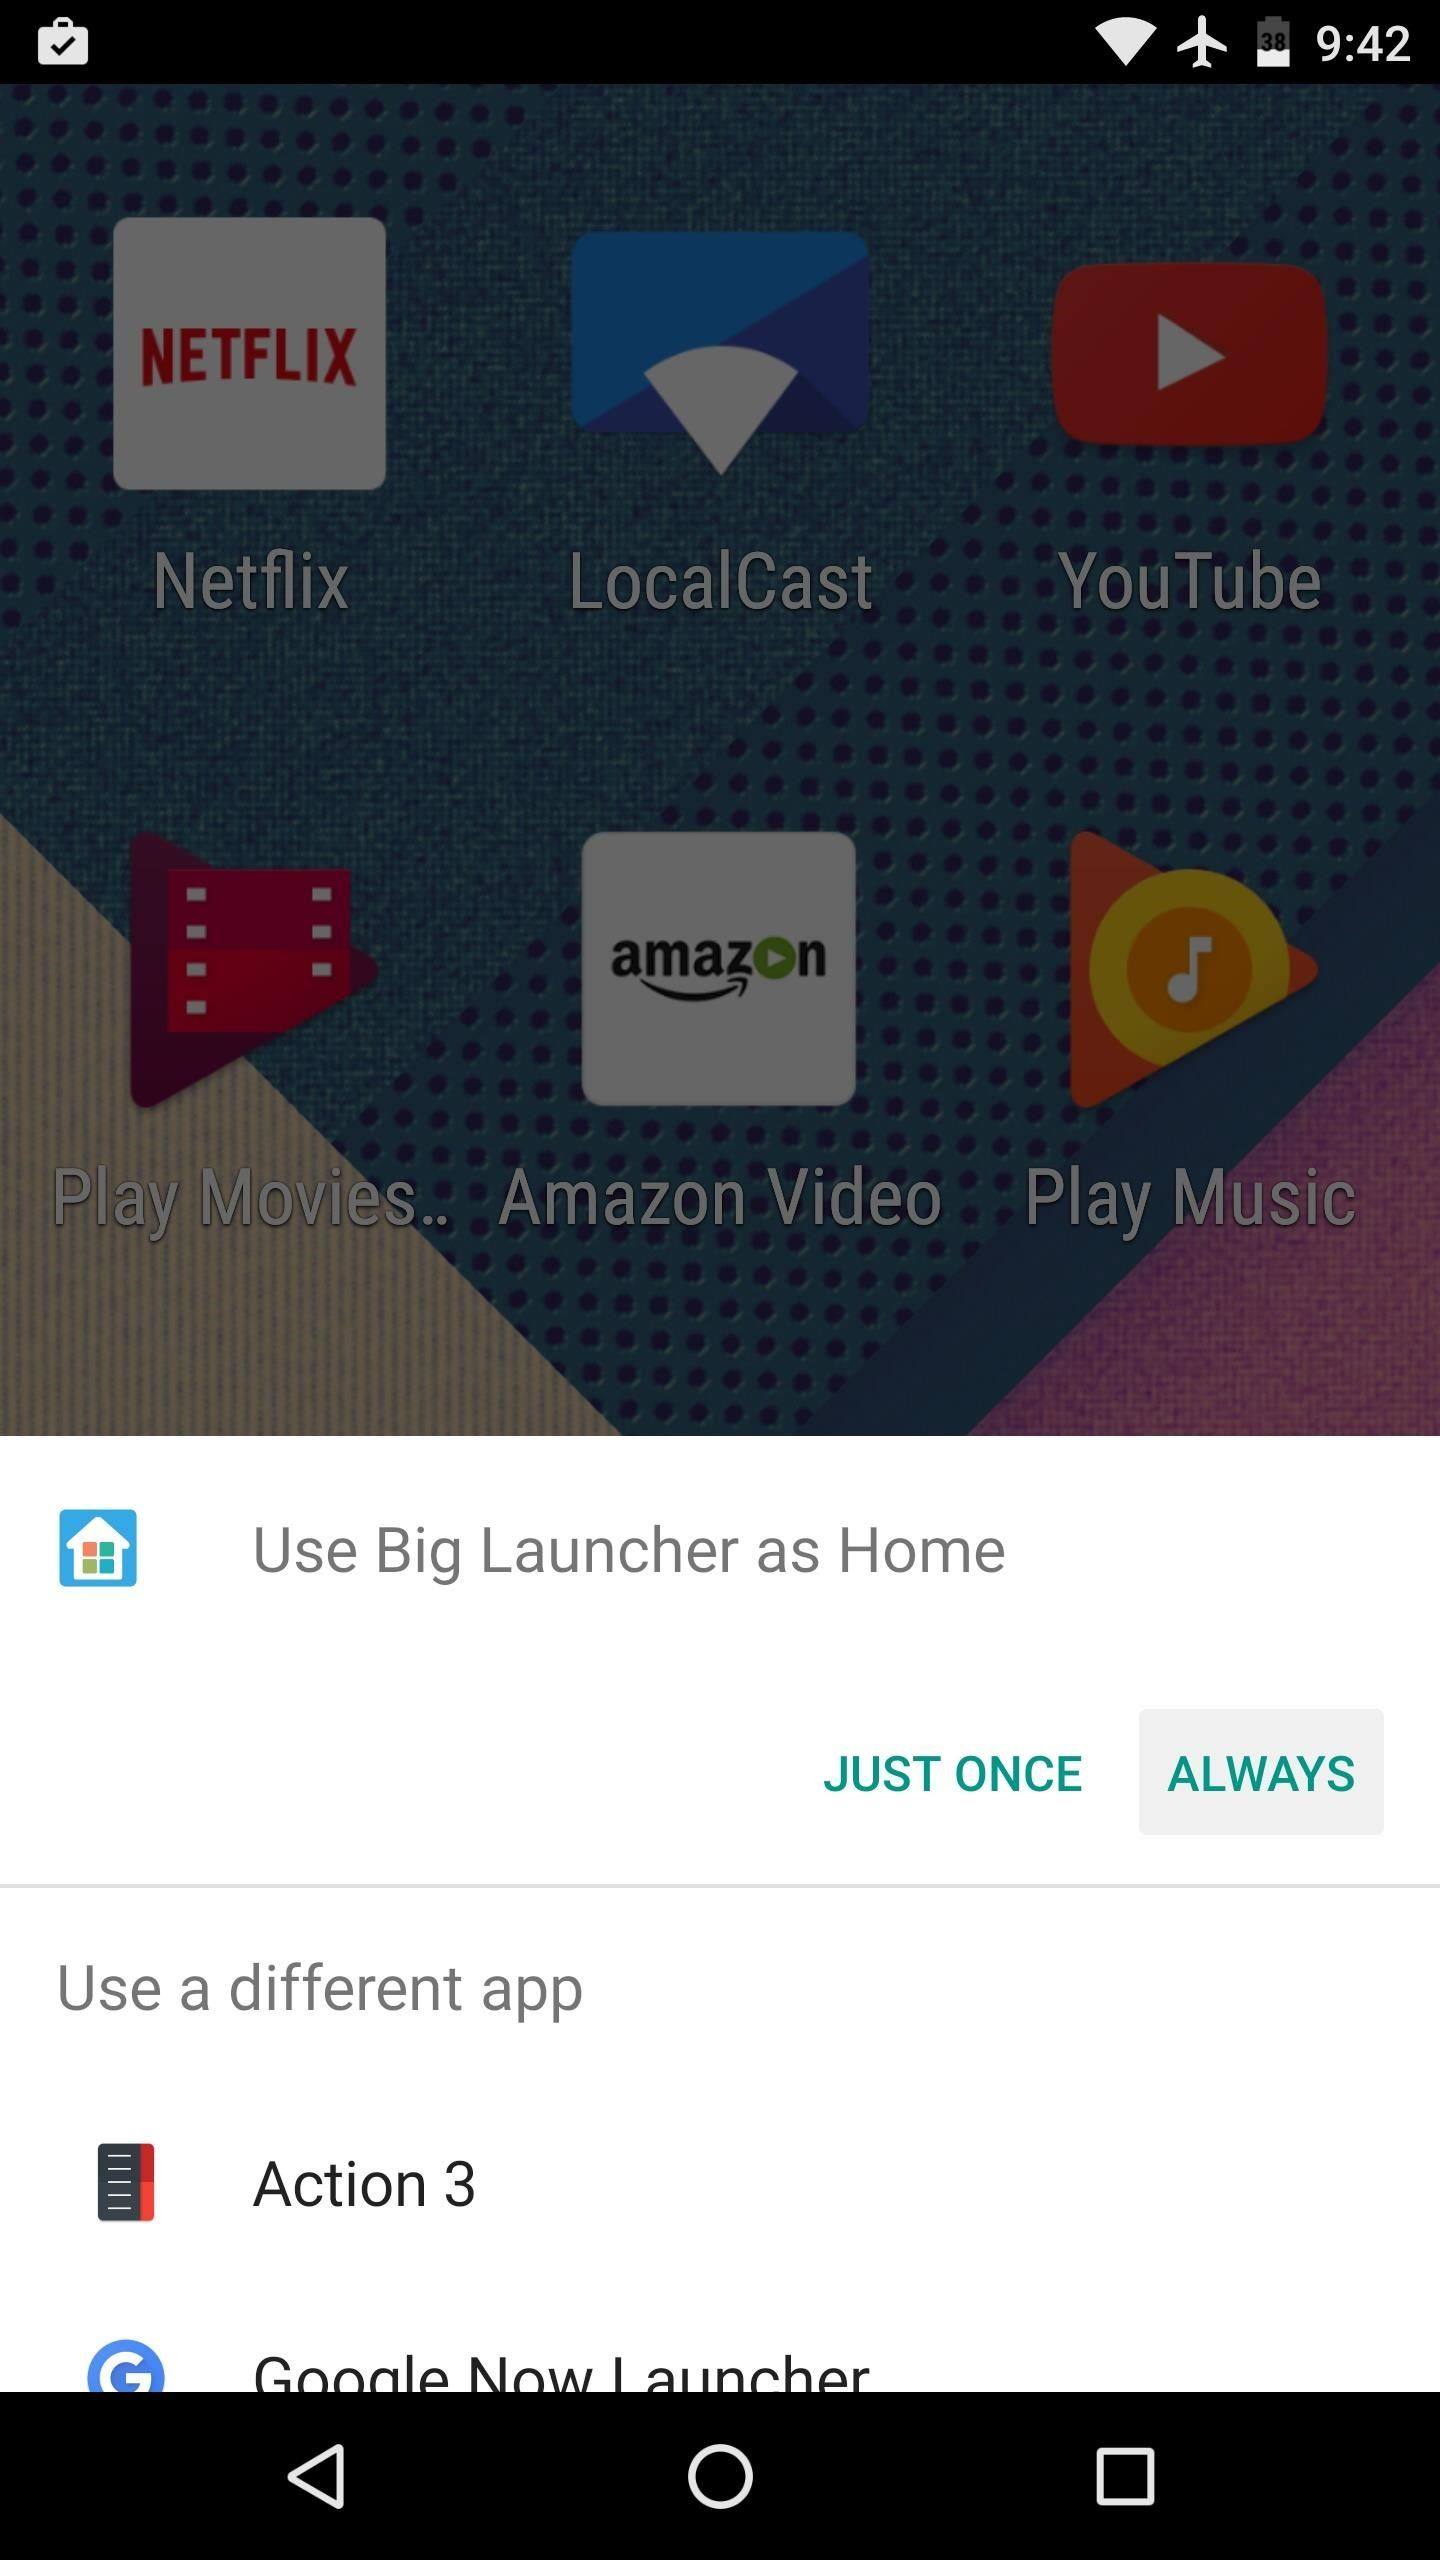 Turn an Old Android Phone into a Chromecast Remote